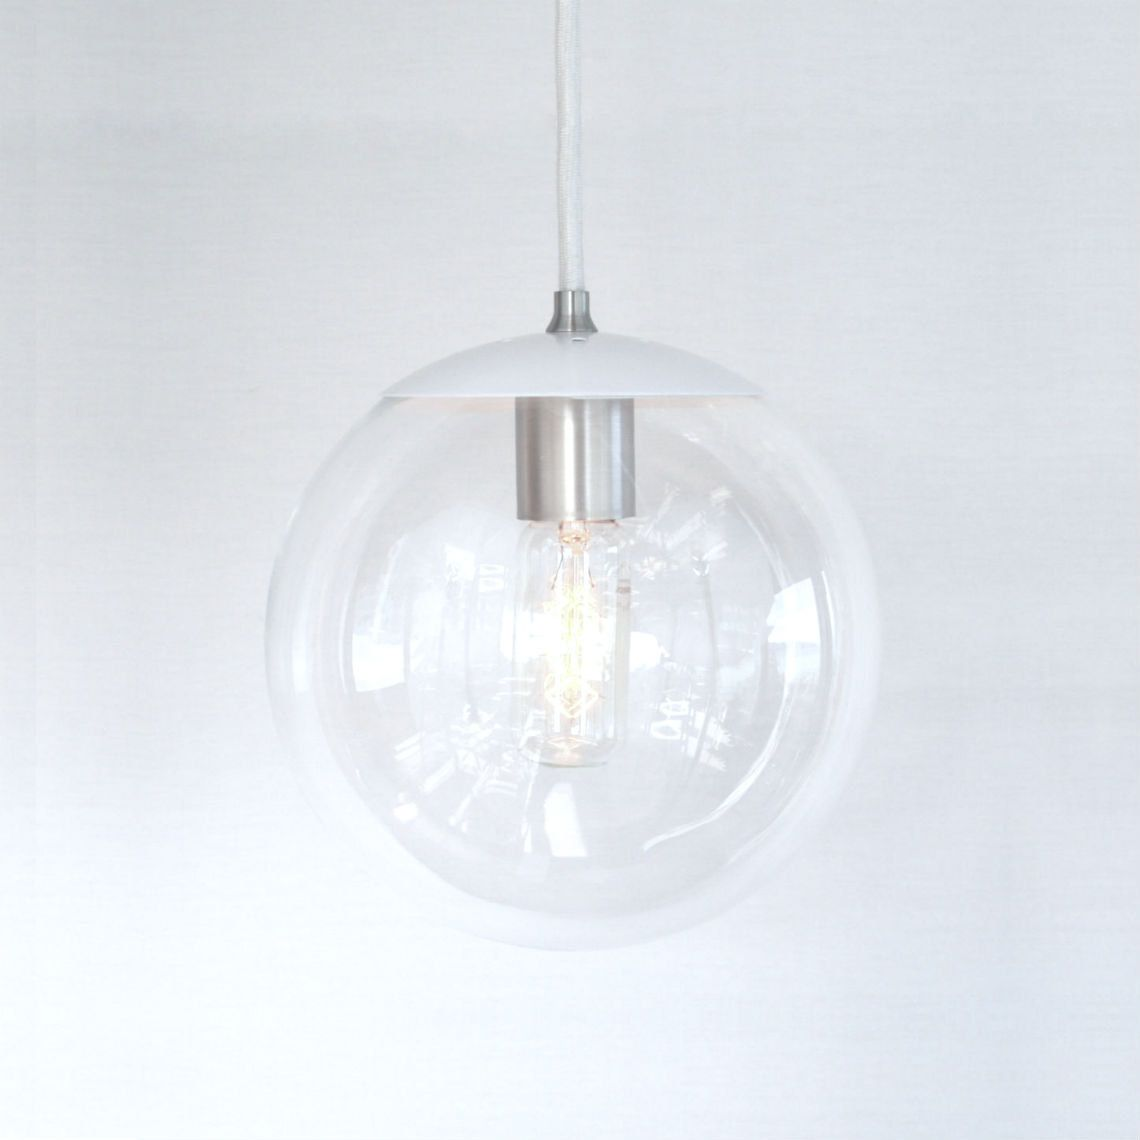 Kitchen Pendant Lighting Globes   Google Search